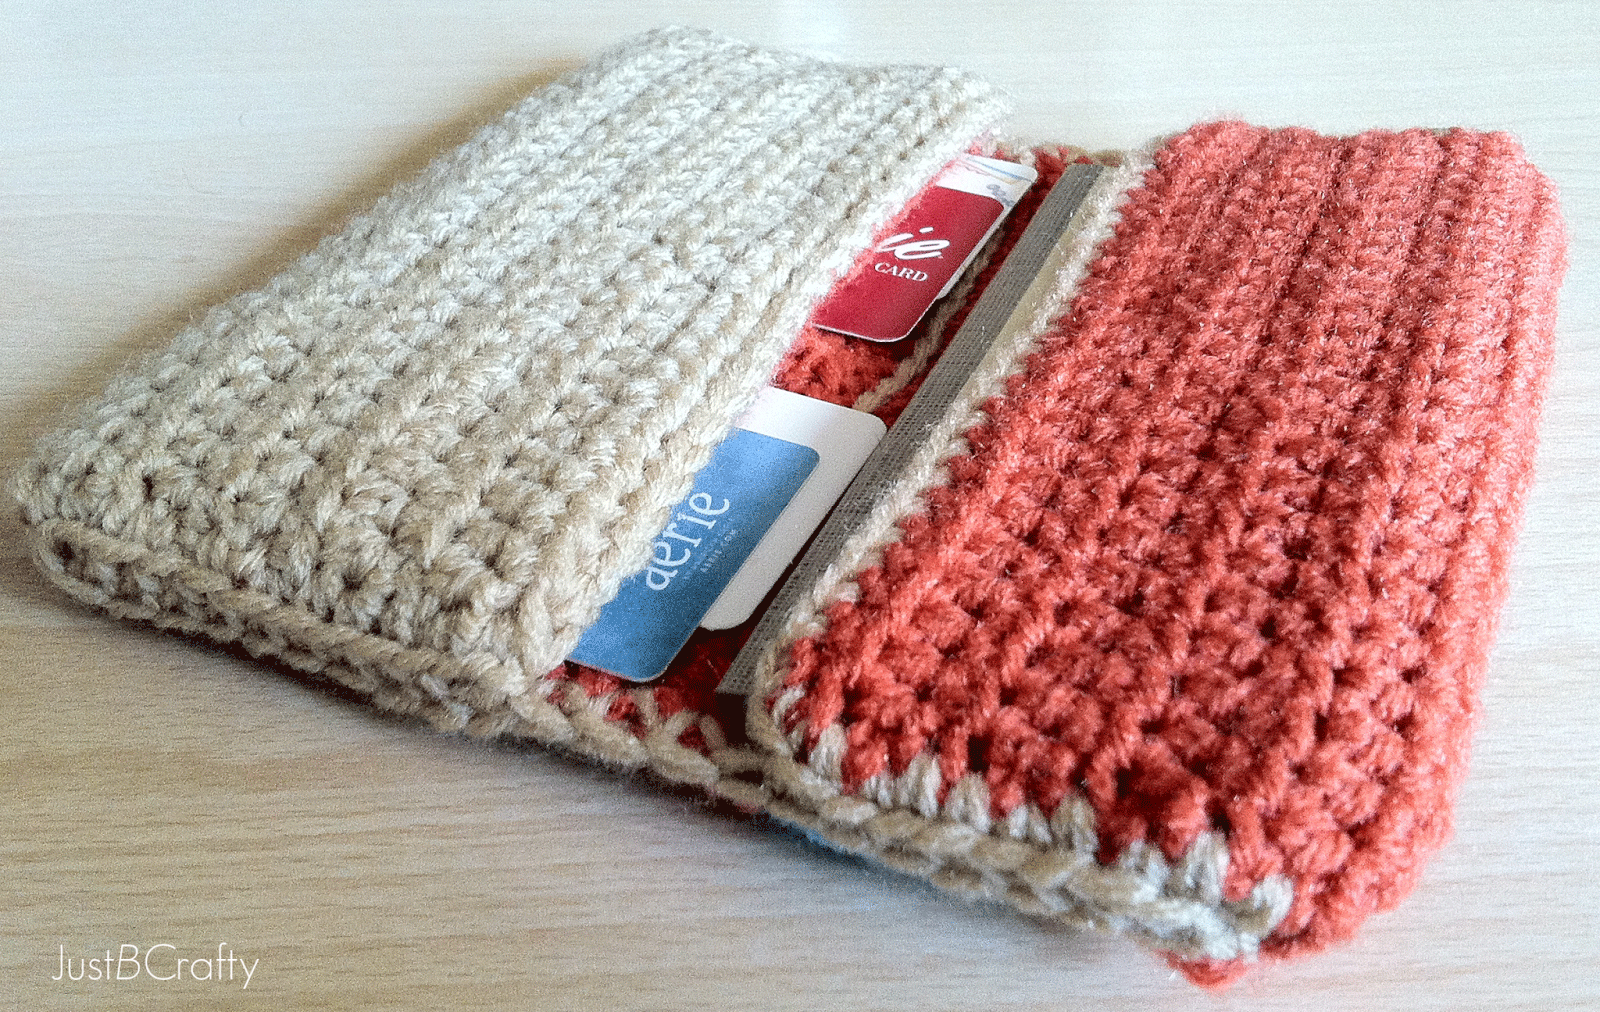 Crochet Wallet Tutorial - Just Be Crafty